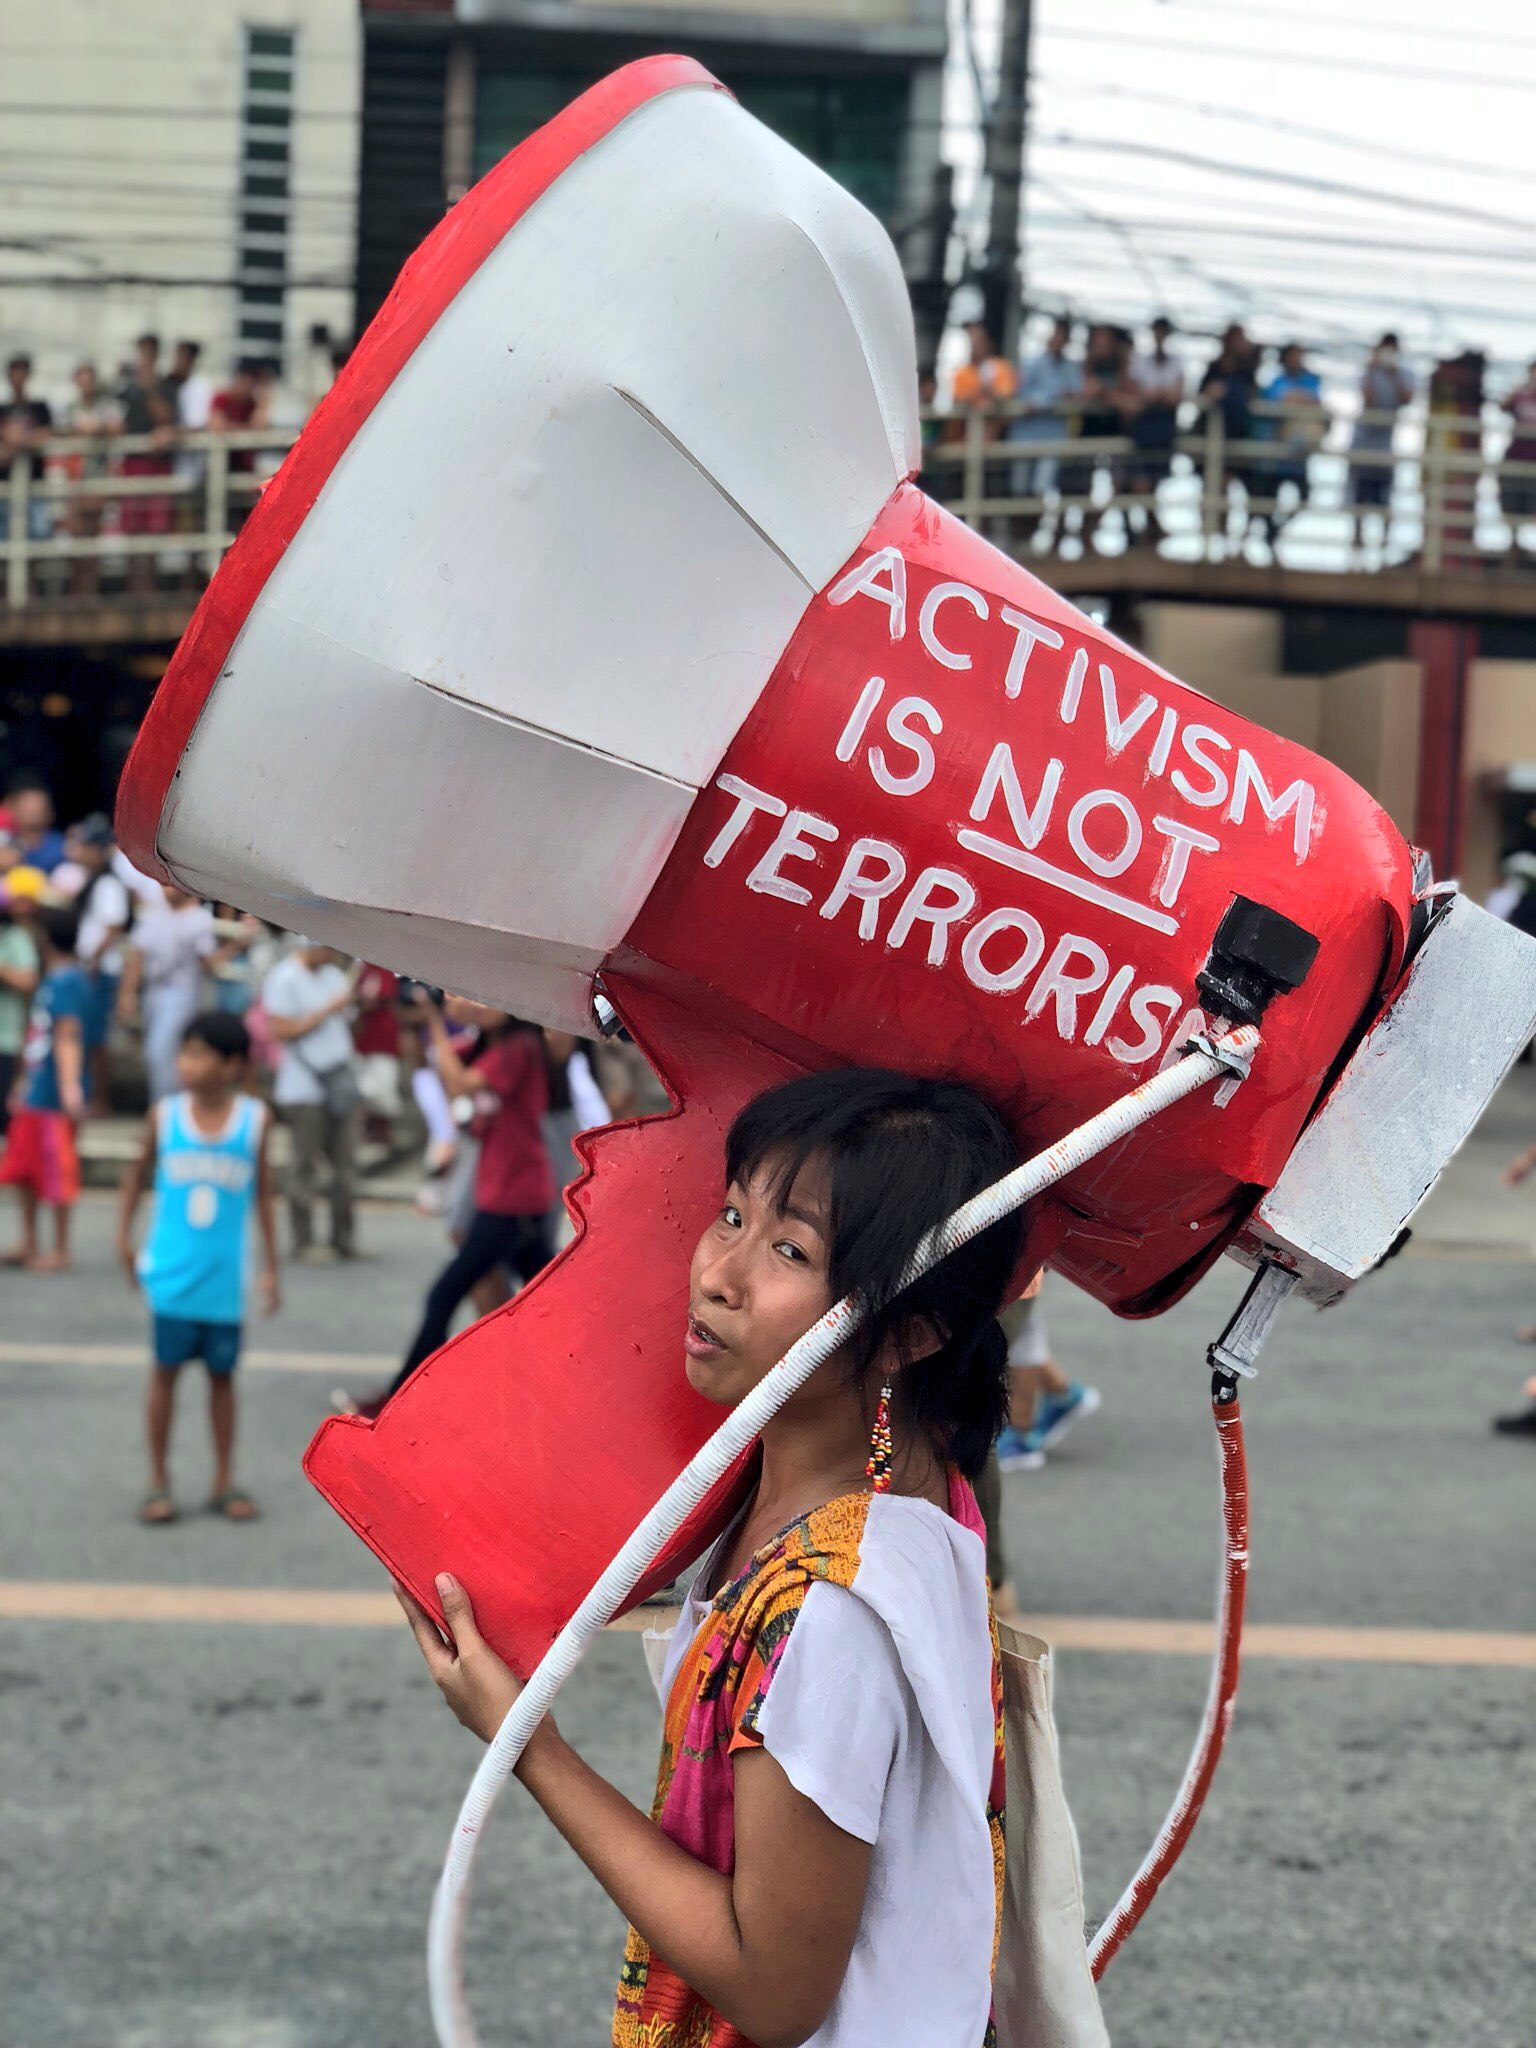 A protester carries this 'megaphone' while marching in Commonwealth Avenue #SONA2018 https://t.co/tTLWF3r3d0